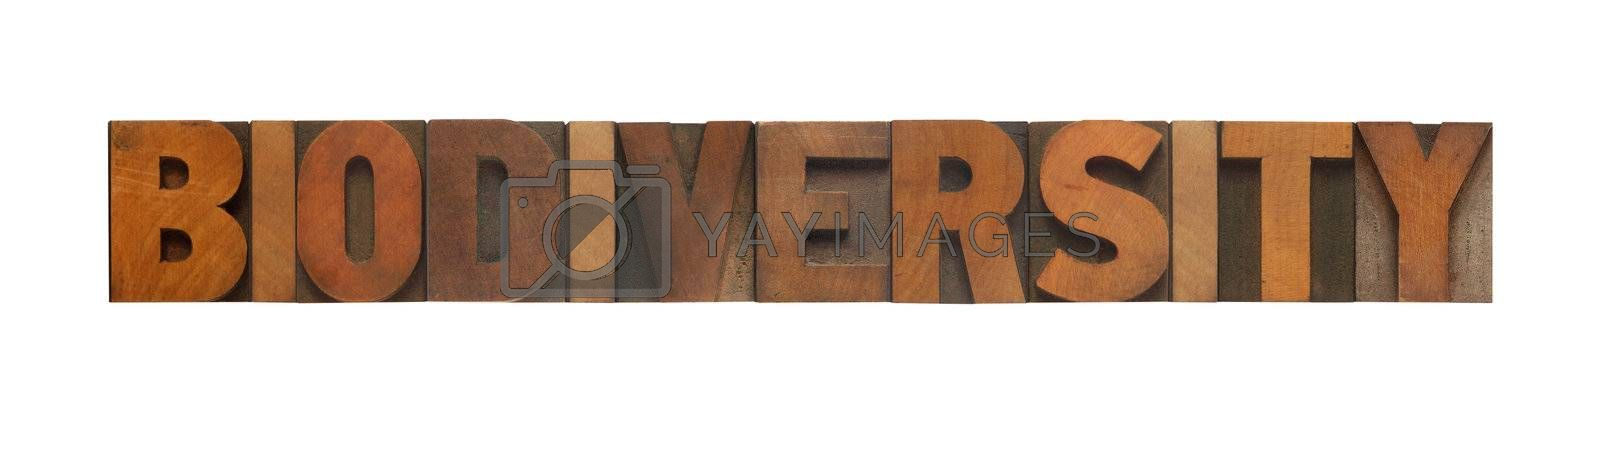 the word biodiversity in old wood type